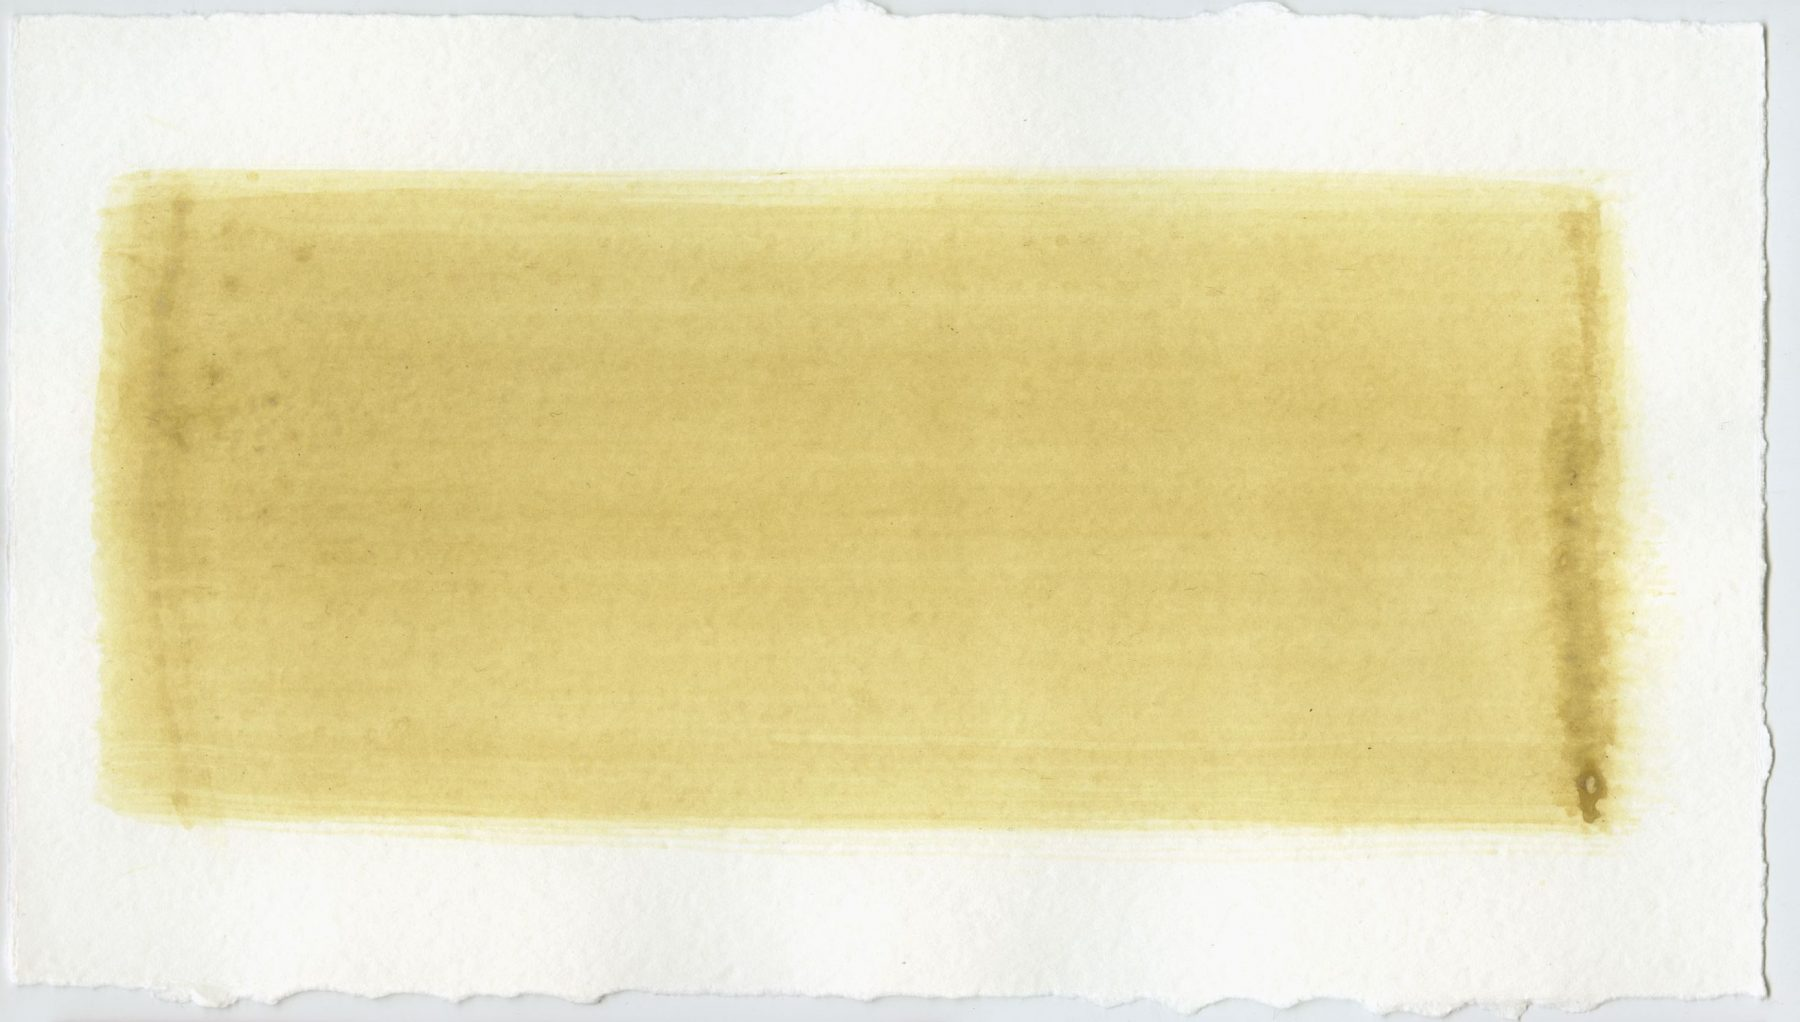 Brush stroke no. 122 - Selfmade pigment: Mortelse oker